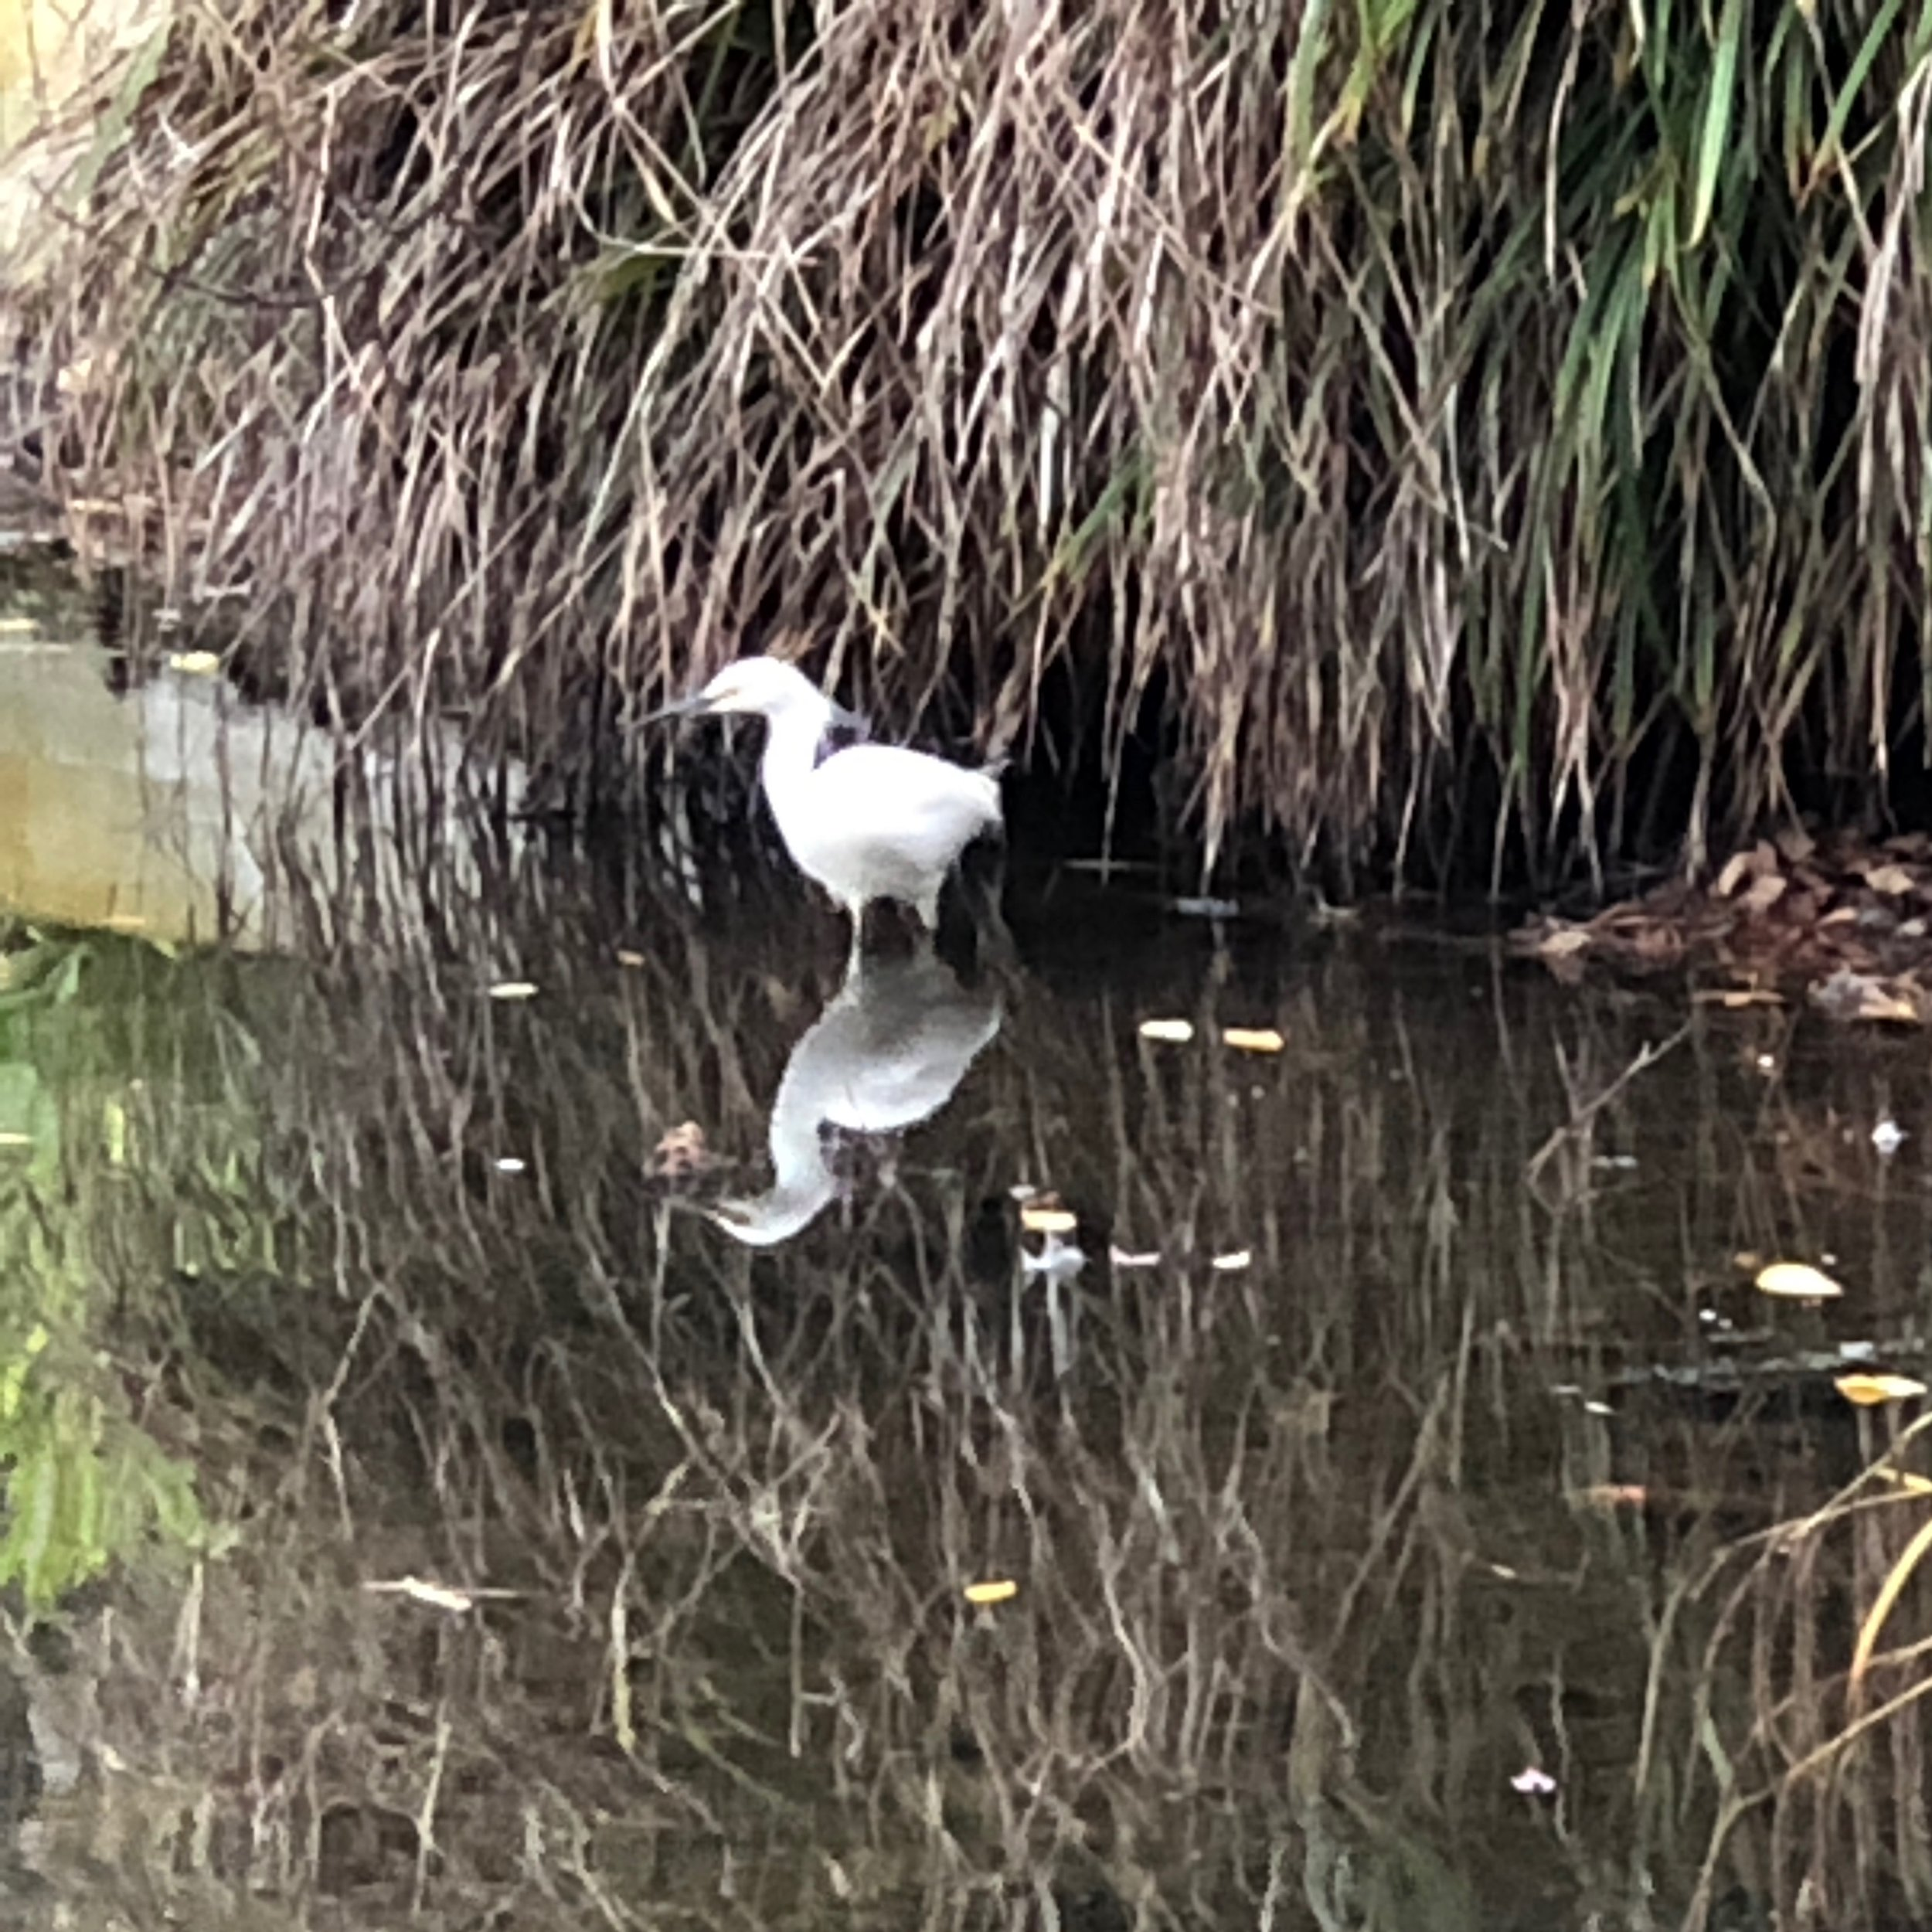 By December 2018 the egret nesting tree that had been an inspiring wonder and celebrated for decades had died and was cut down. On December 21, 2018, a snowy egret that didn't migrate wades the shoreline where the rangy Monterey pine that hosted the egret colony had once leaned over the lagoon.